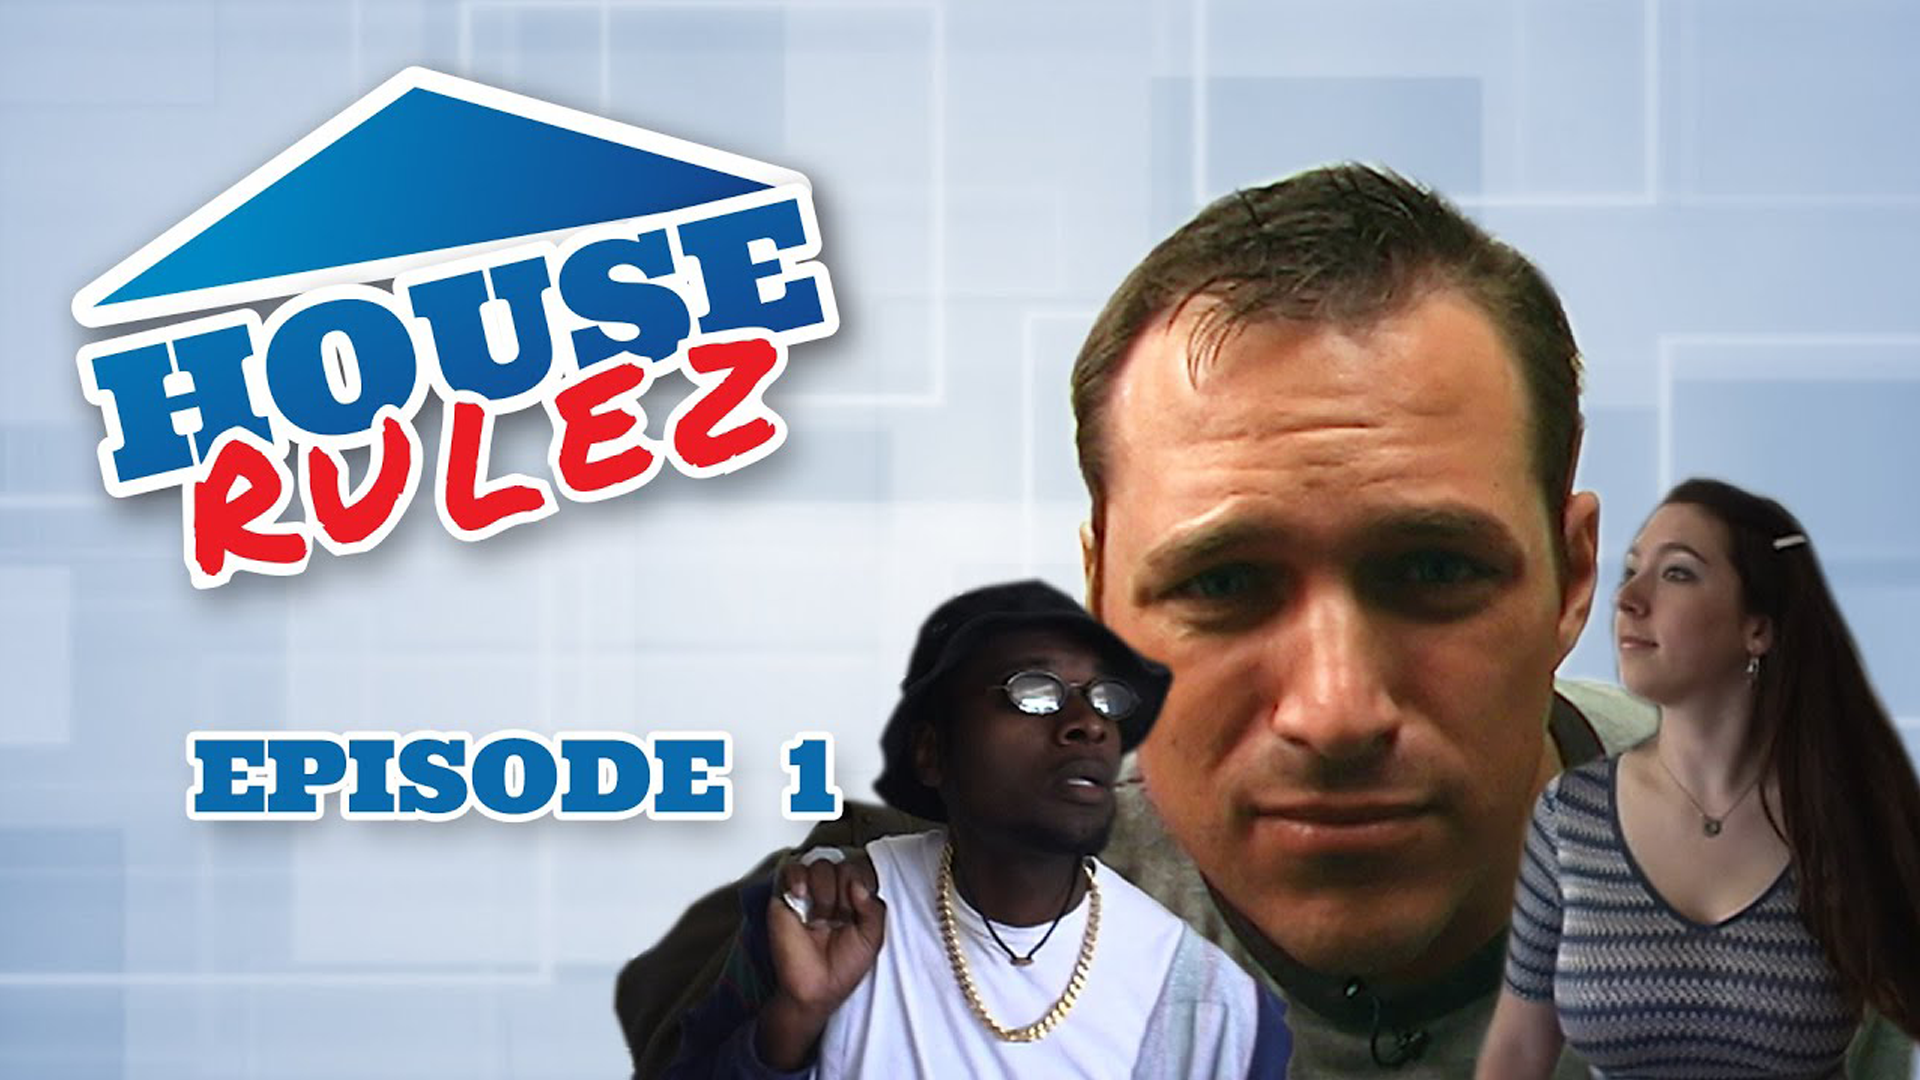 House Rulez Episode 1